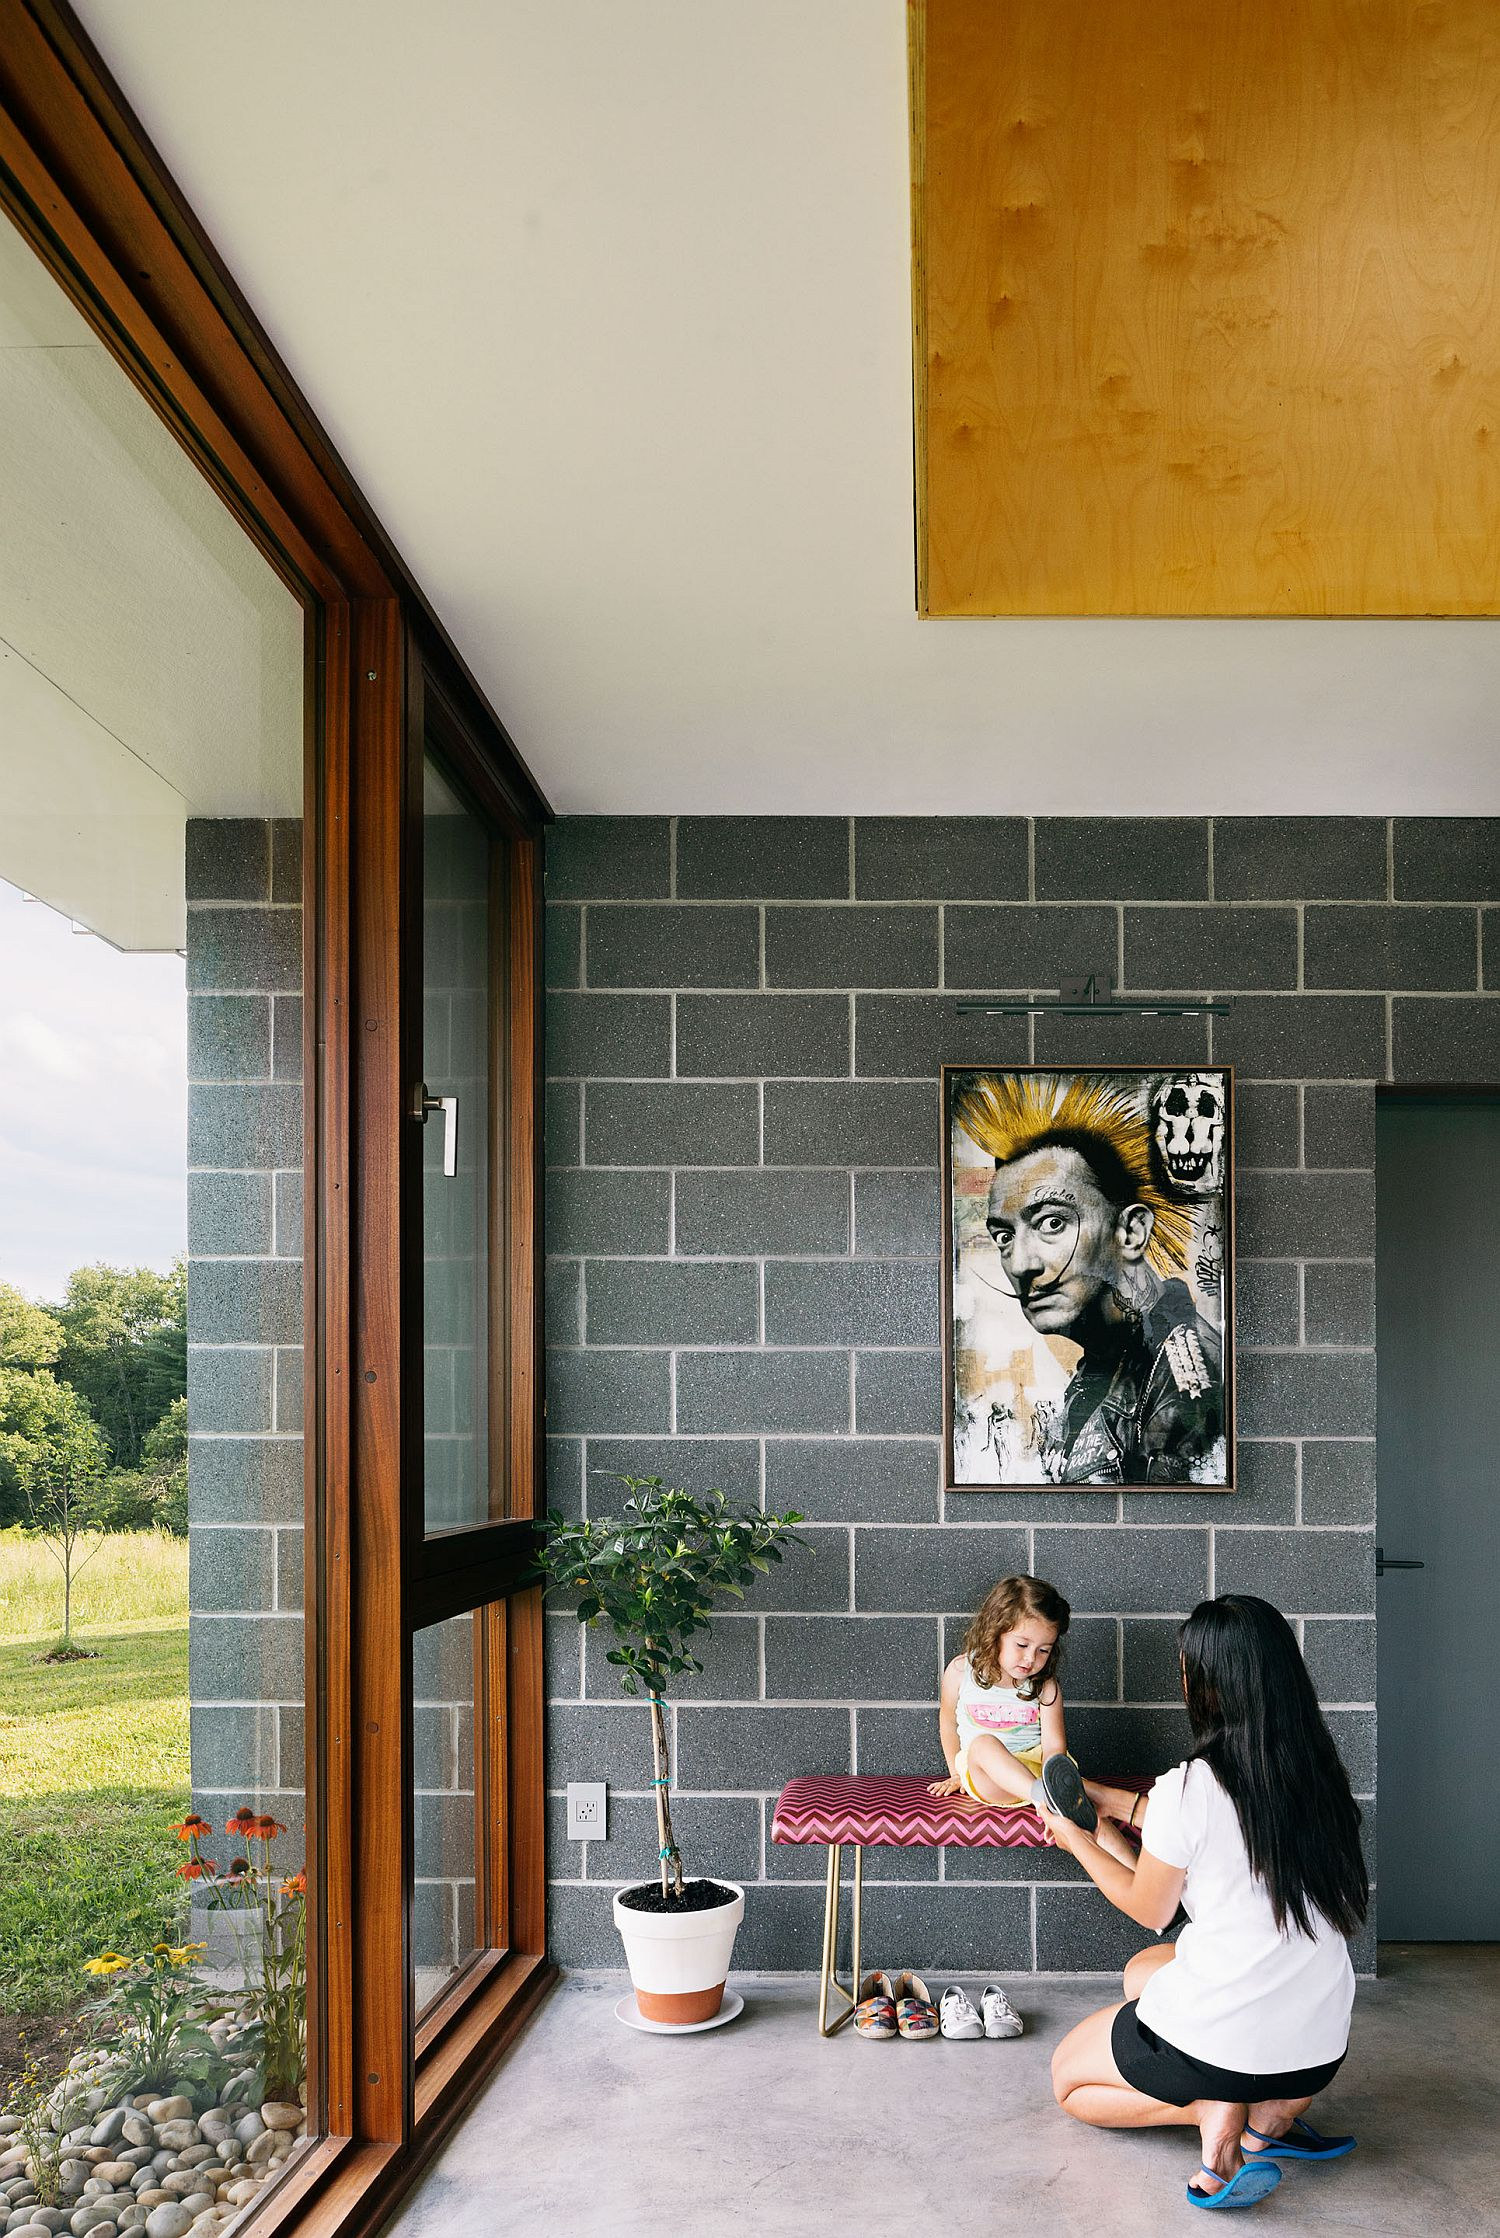 Walls in gray give the interior a distinct contemporary appeal